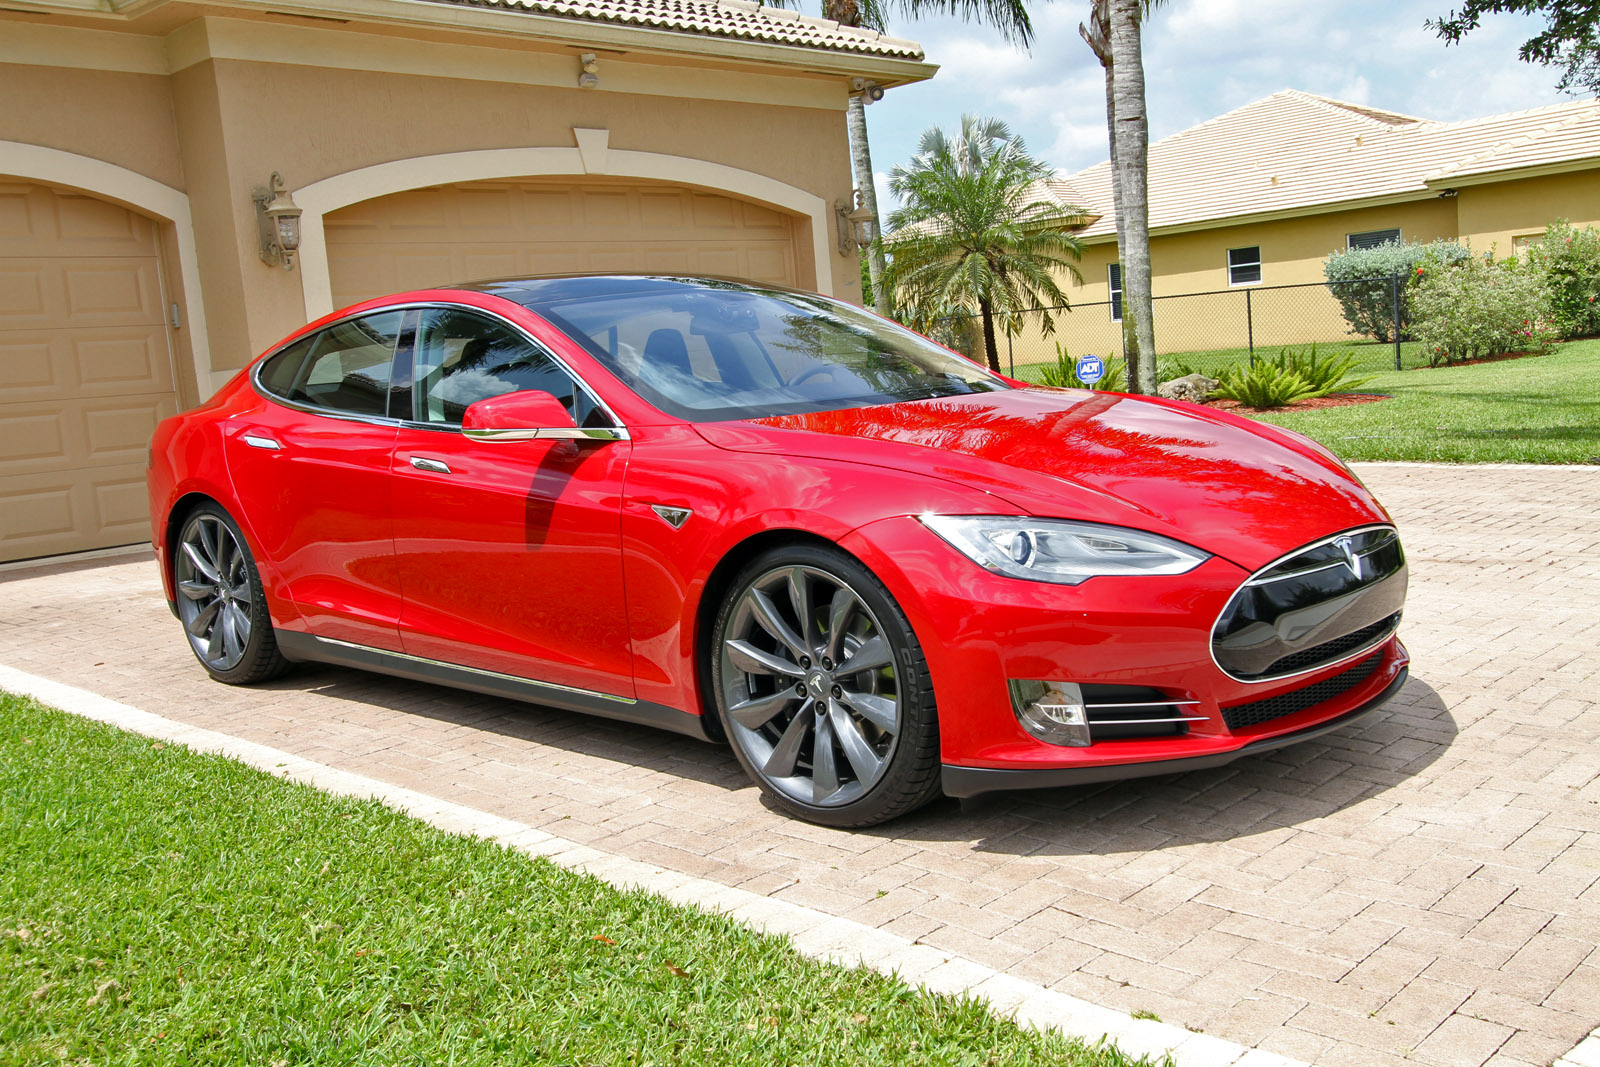 2013 Tesla Model S P85 Multi Coat Red Pictures Dragtimes